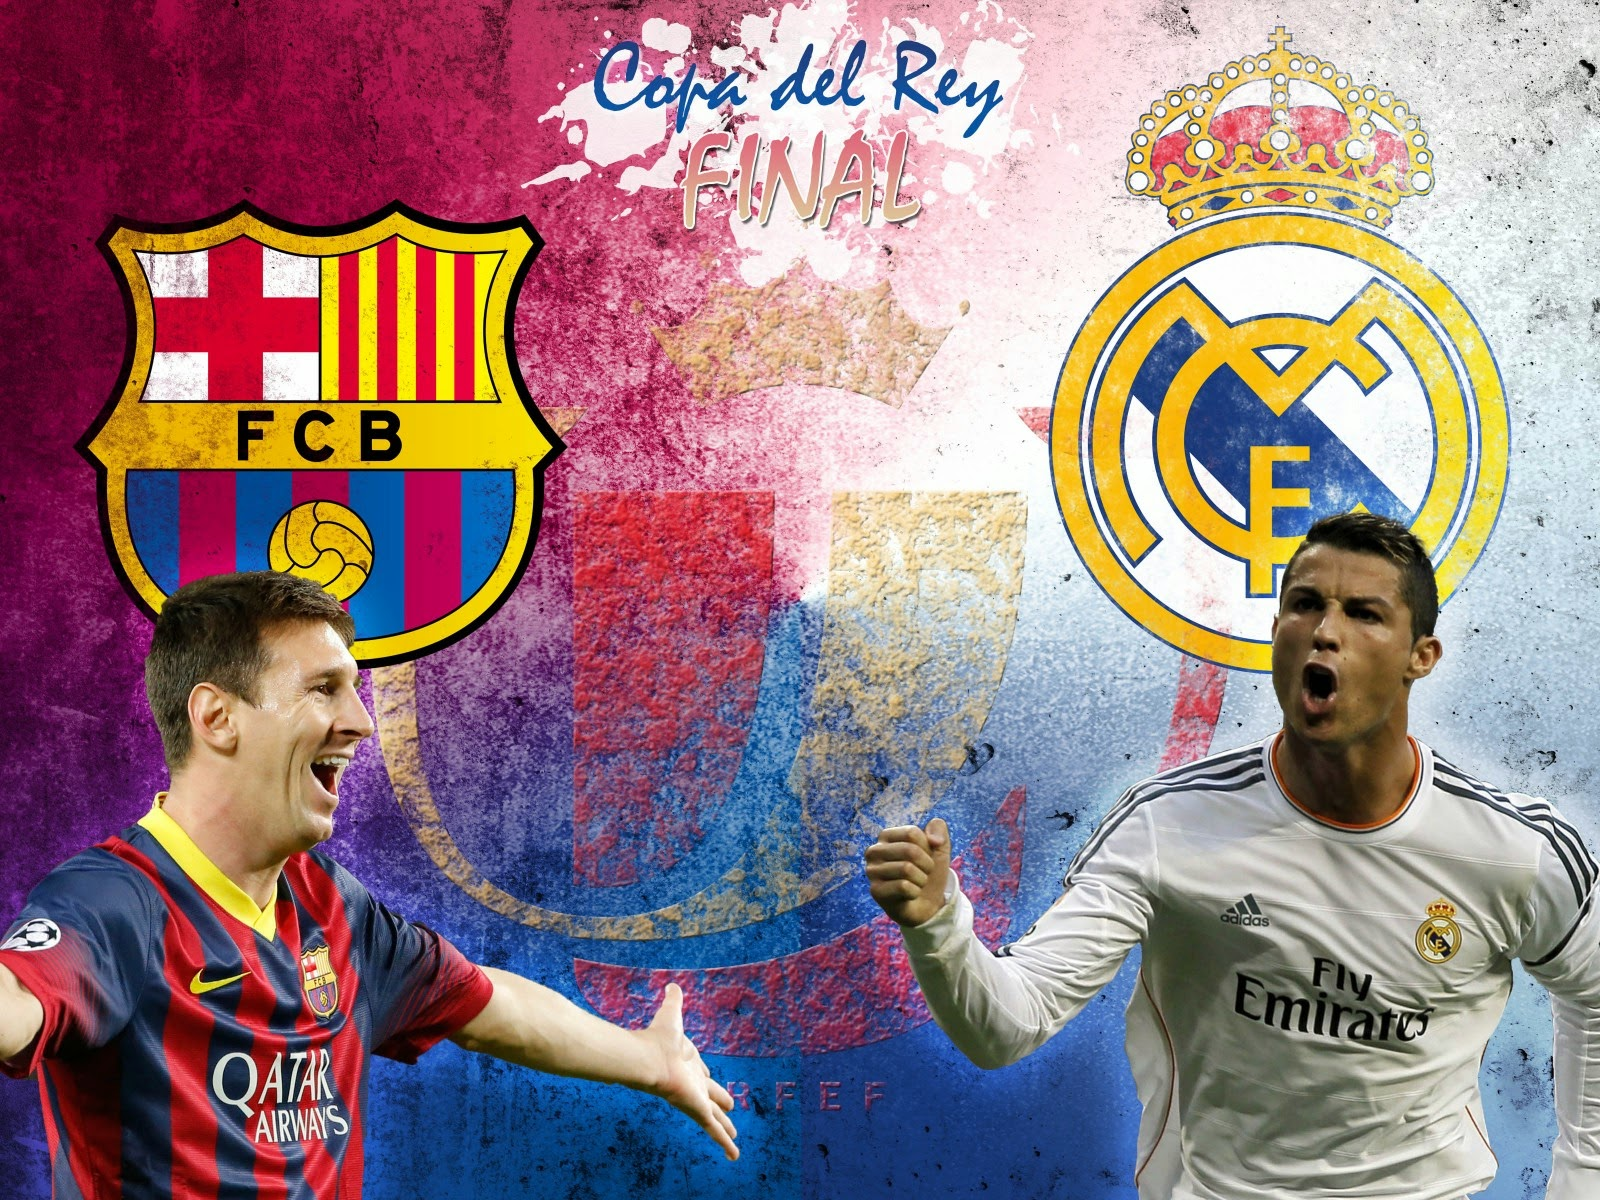 FC Barcelona vs Real Madrid 2014 Copa Del Rey Final Spain HD Desktop Wallpaper